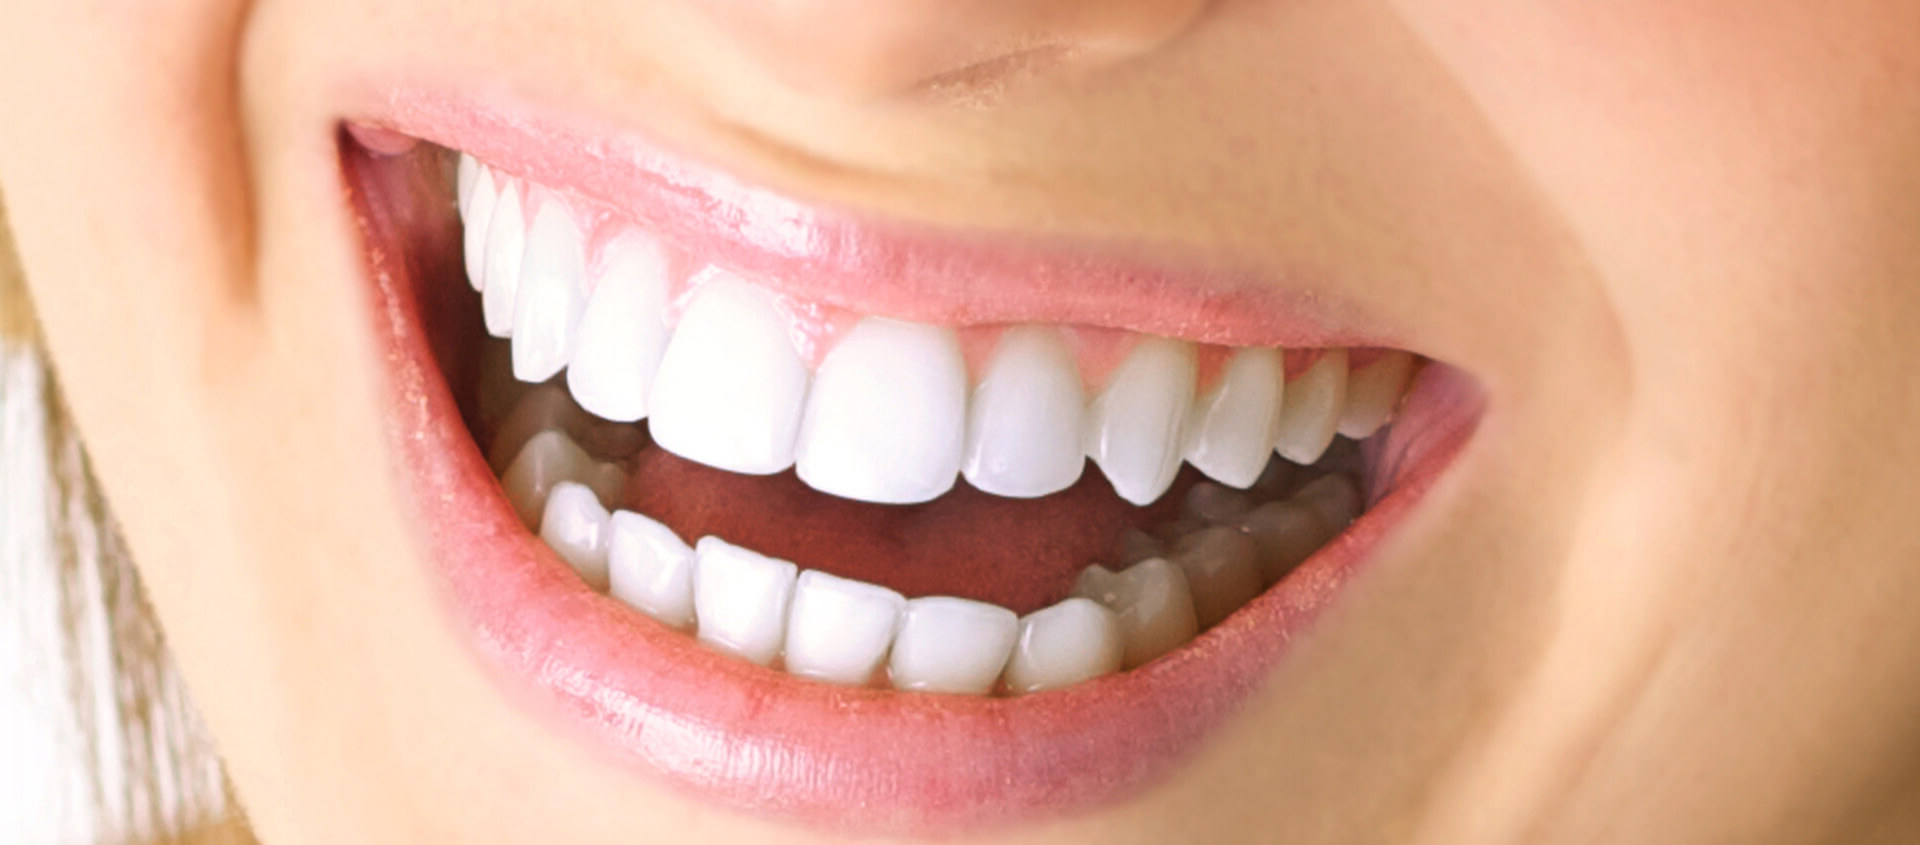 Cosmetic Dentist Office at Williams Family & Cosmetic Dentistry in Brandon FL Area